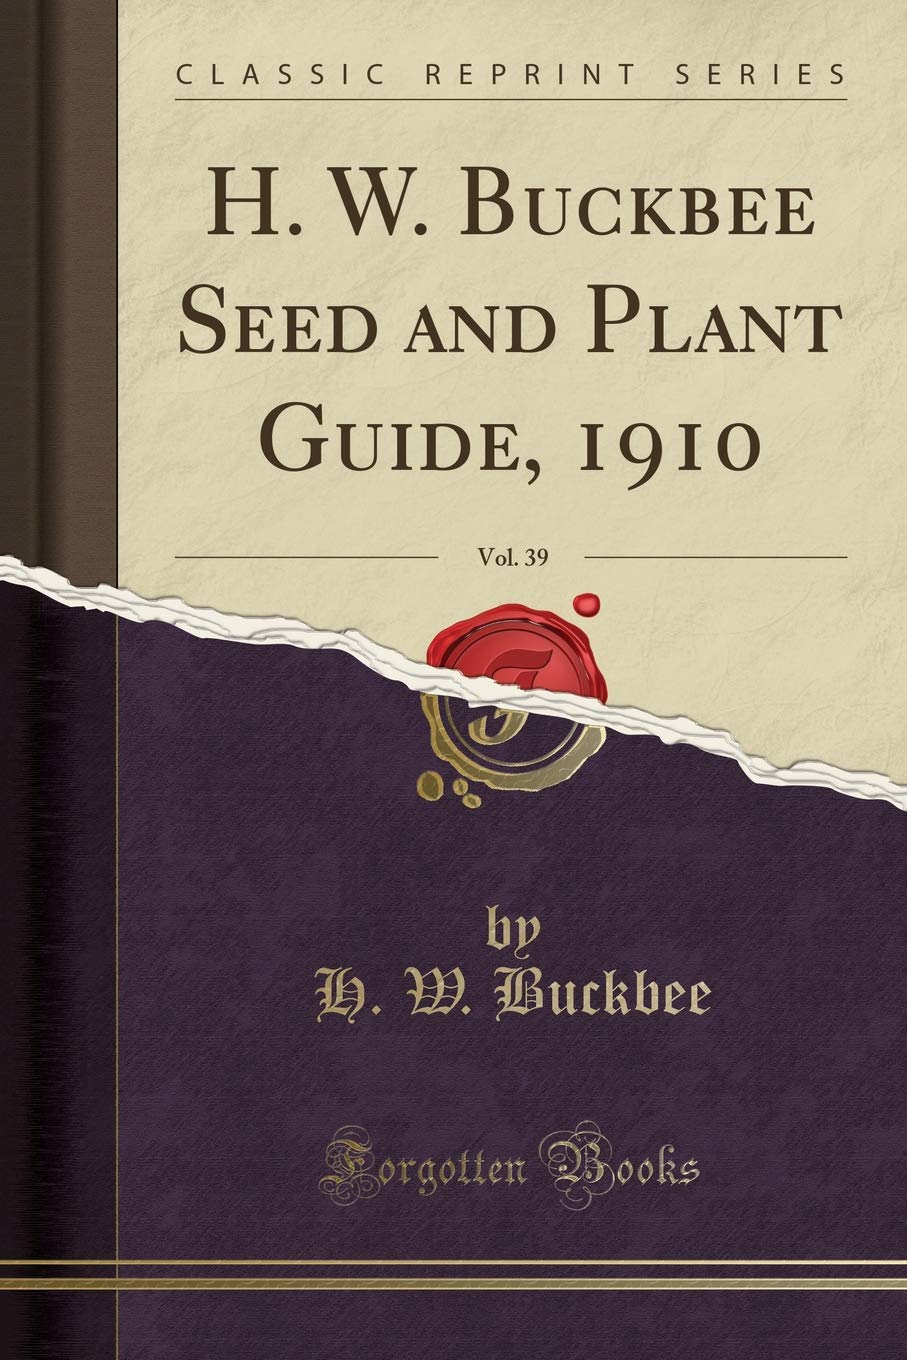 Read Online H. W. Buckbee Seed and Plant Guide, 1910, Vol. 39 (Classic Reprint) PDF